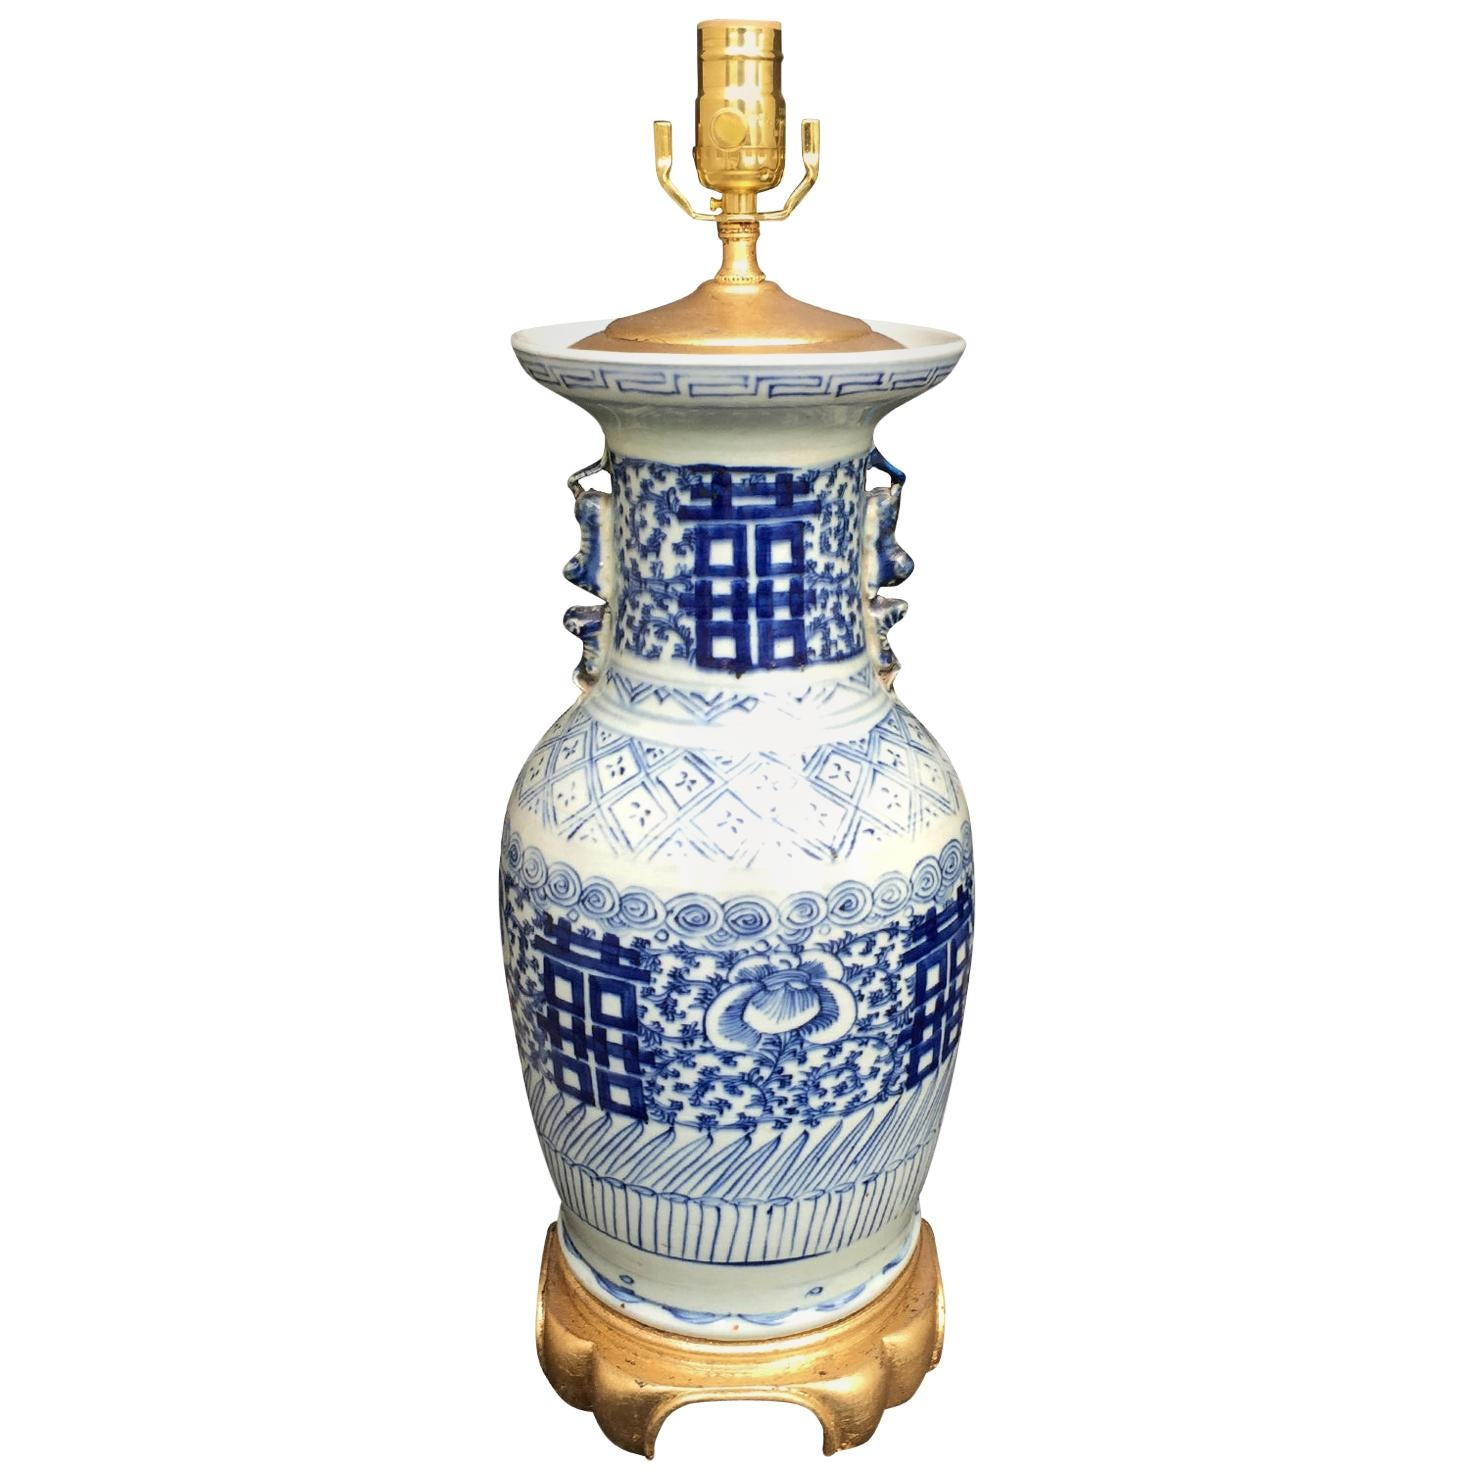 19th-20th Century Chinese Export Blue & White Double Happiness Porcelain Lamp